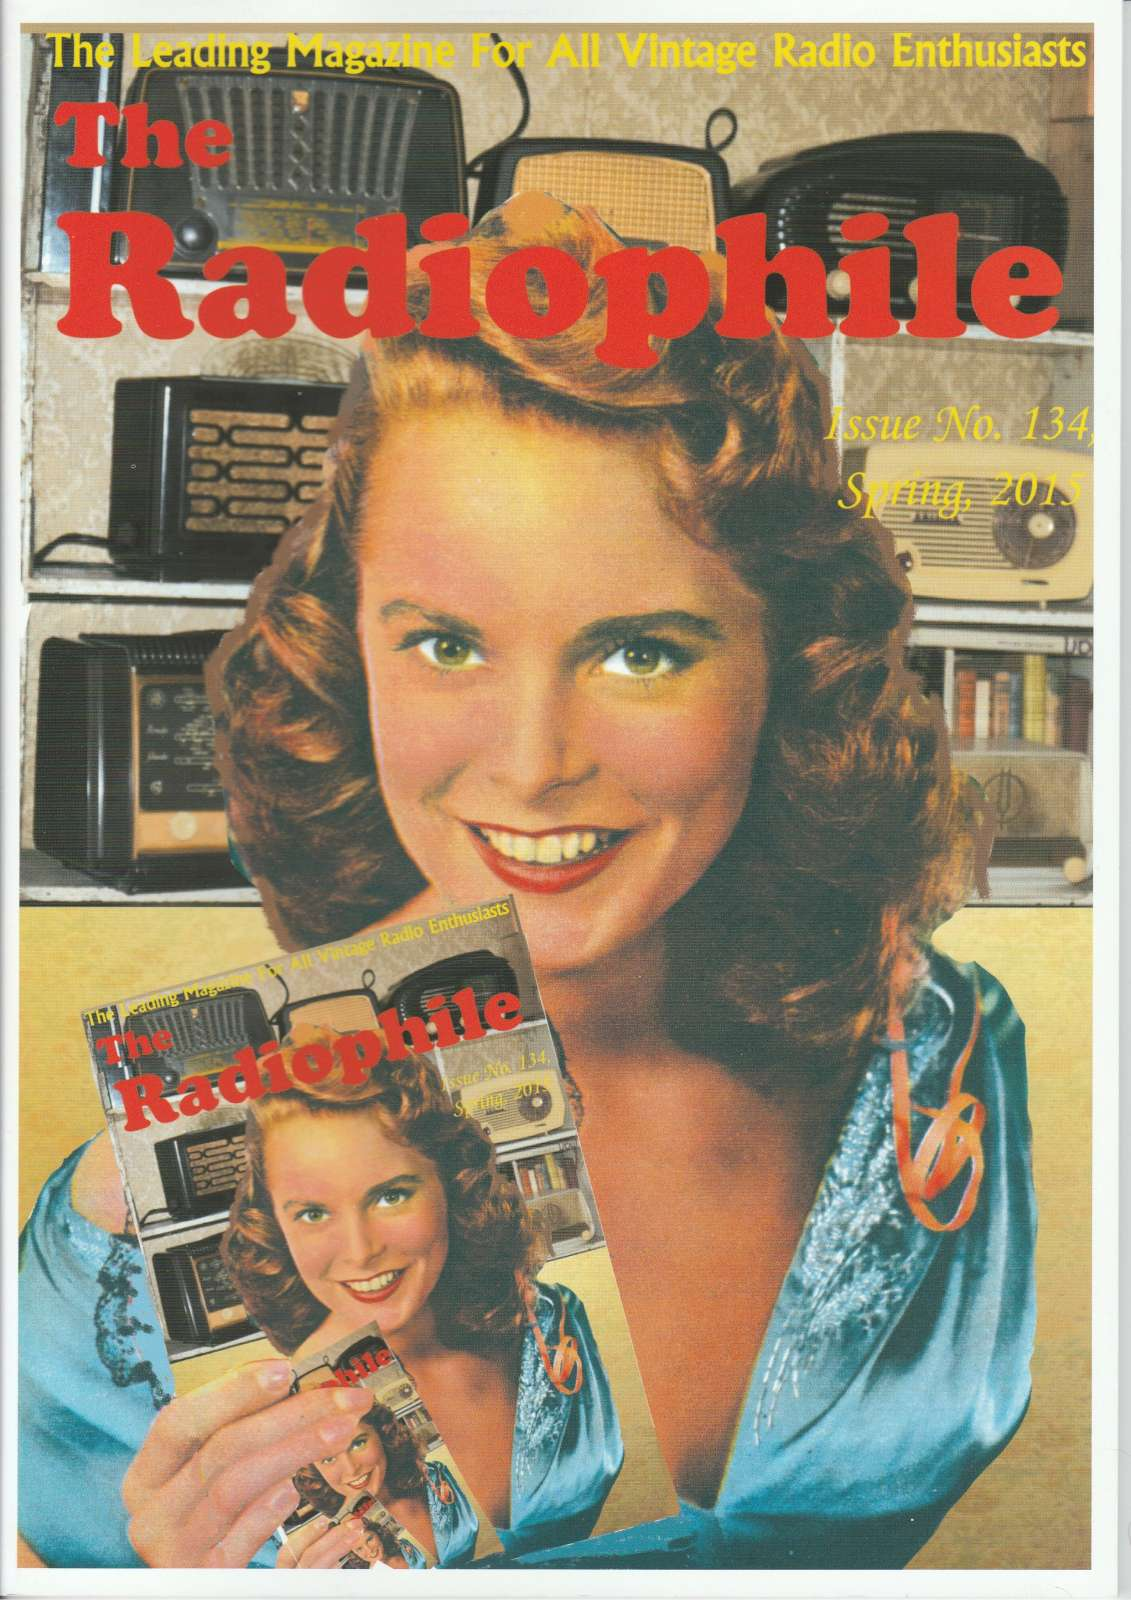 Radiophile Issue 134